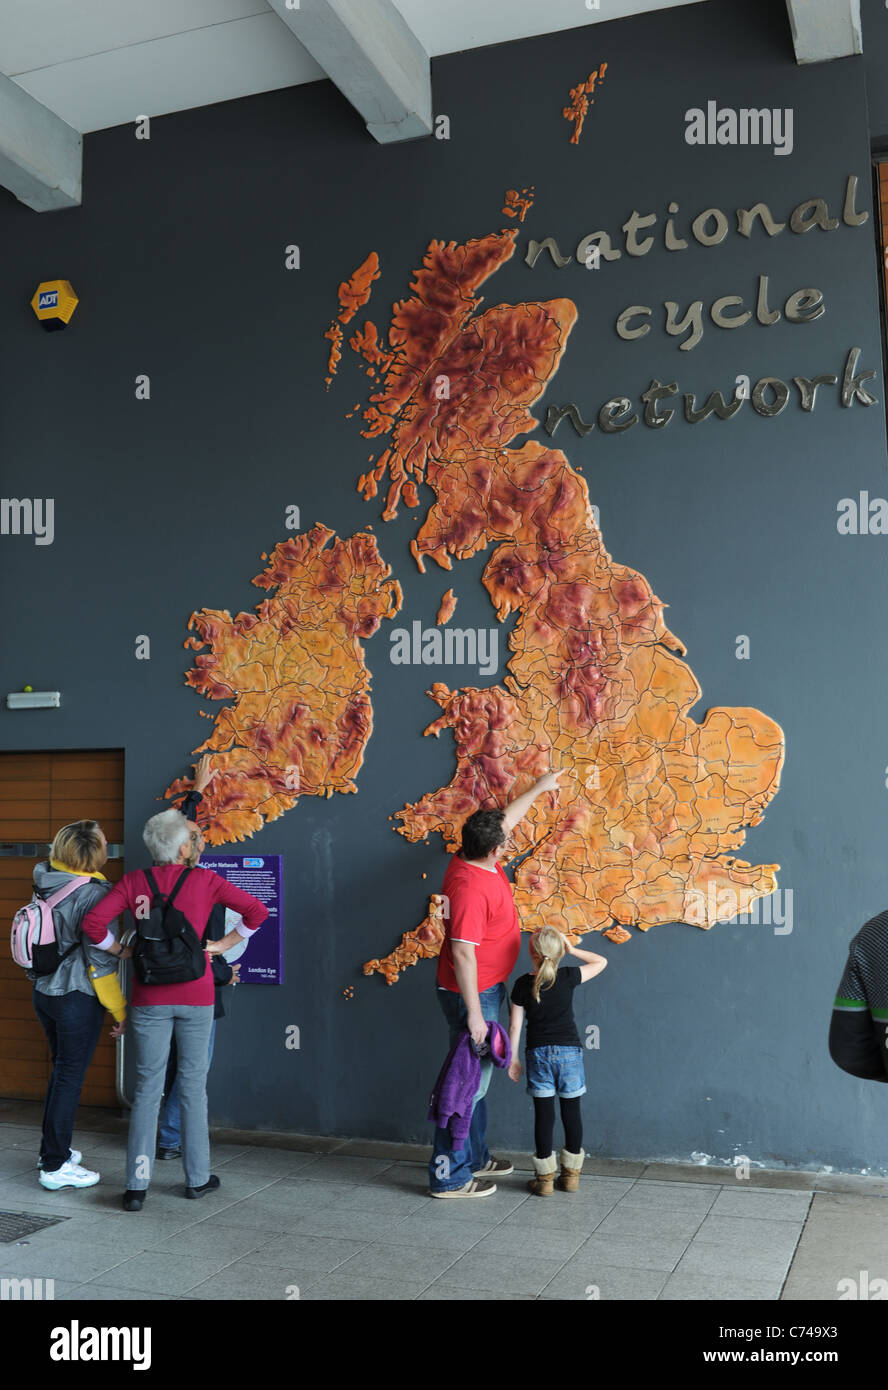 Giant map of the British National Cycle Network at Bristol harbour